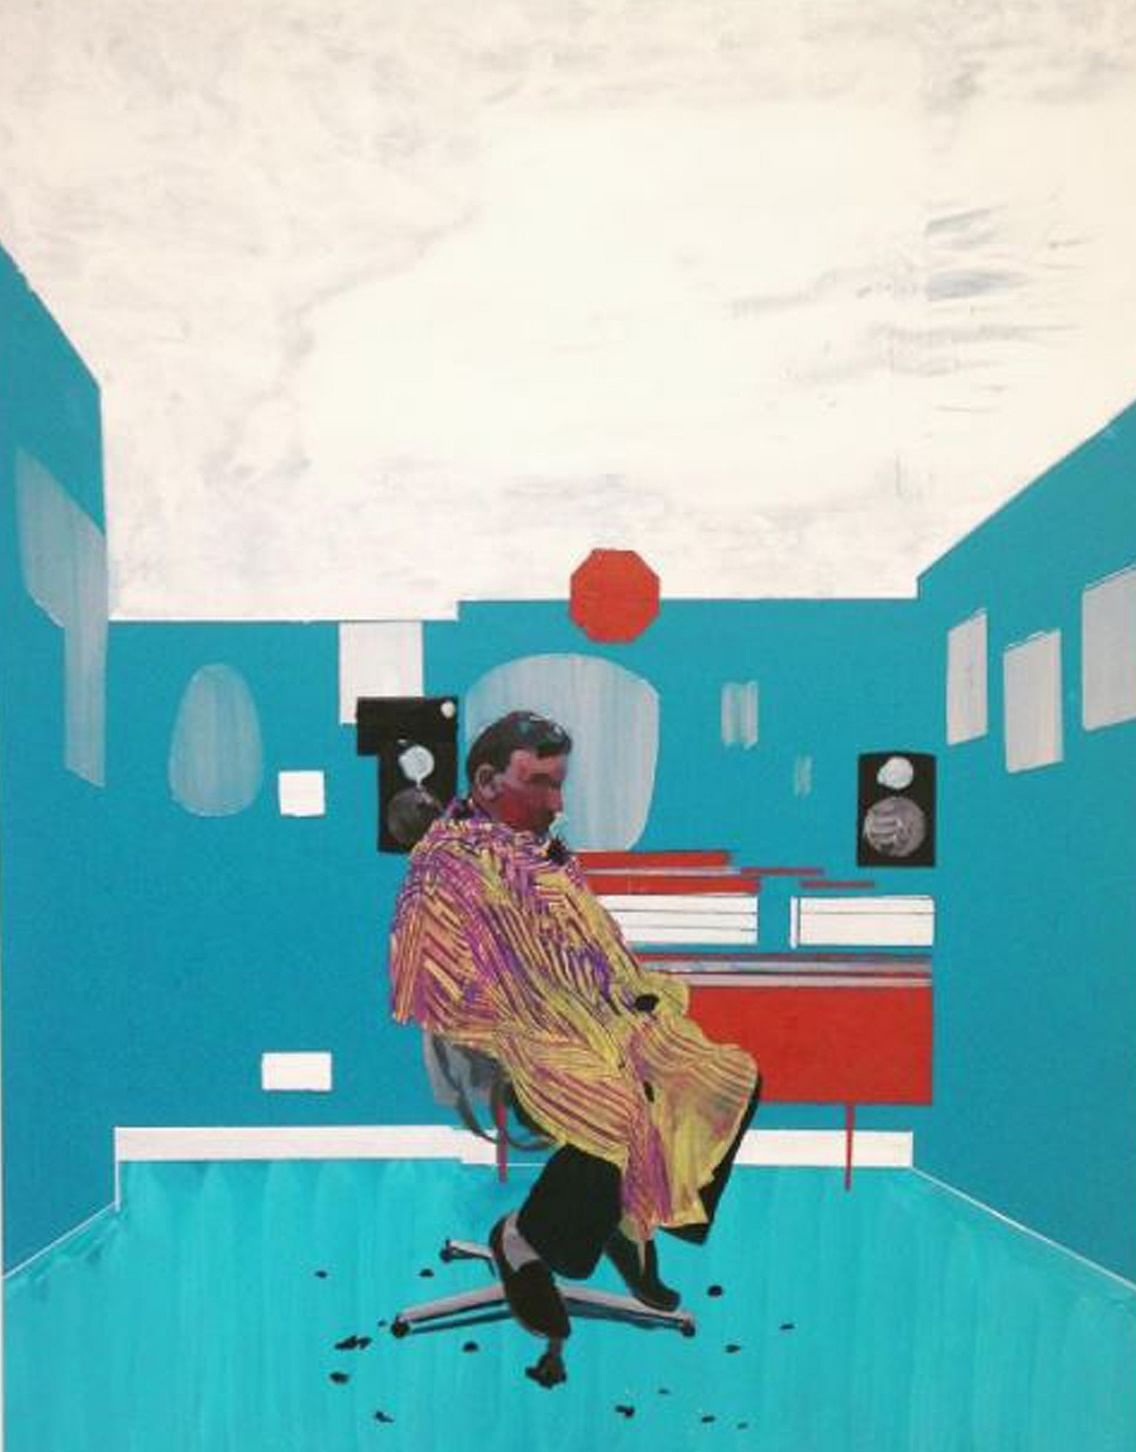 Peter's Sitter's III by Hurvin Anderson, 52, one of the four nominees for the Turner Prize.